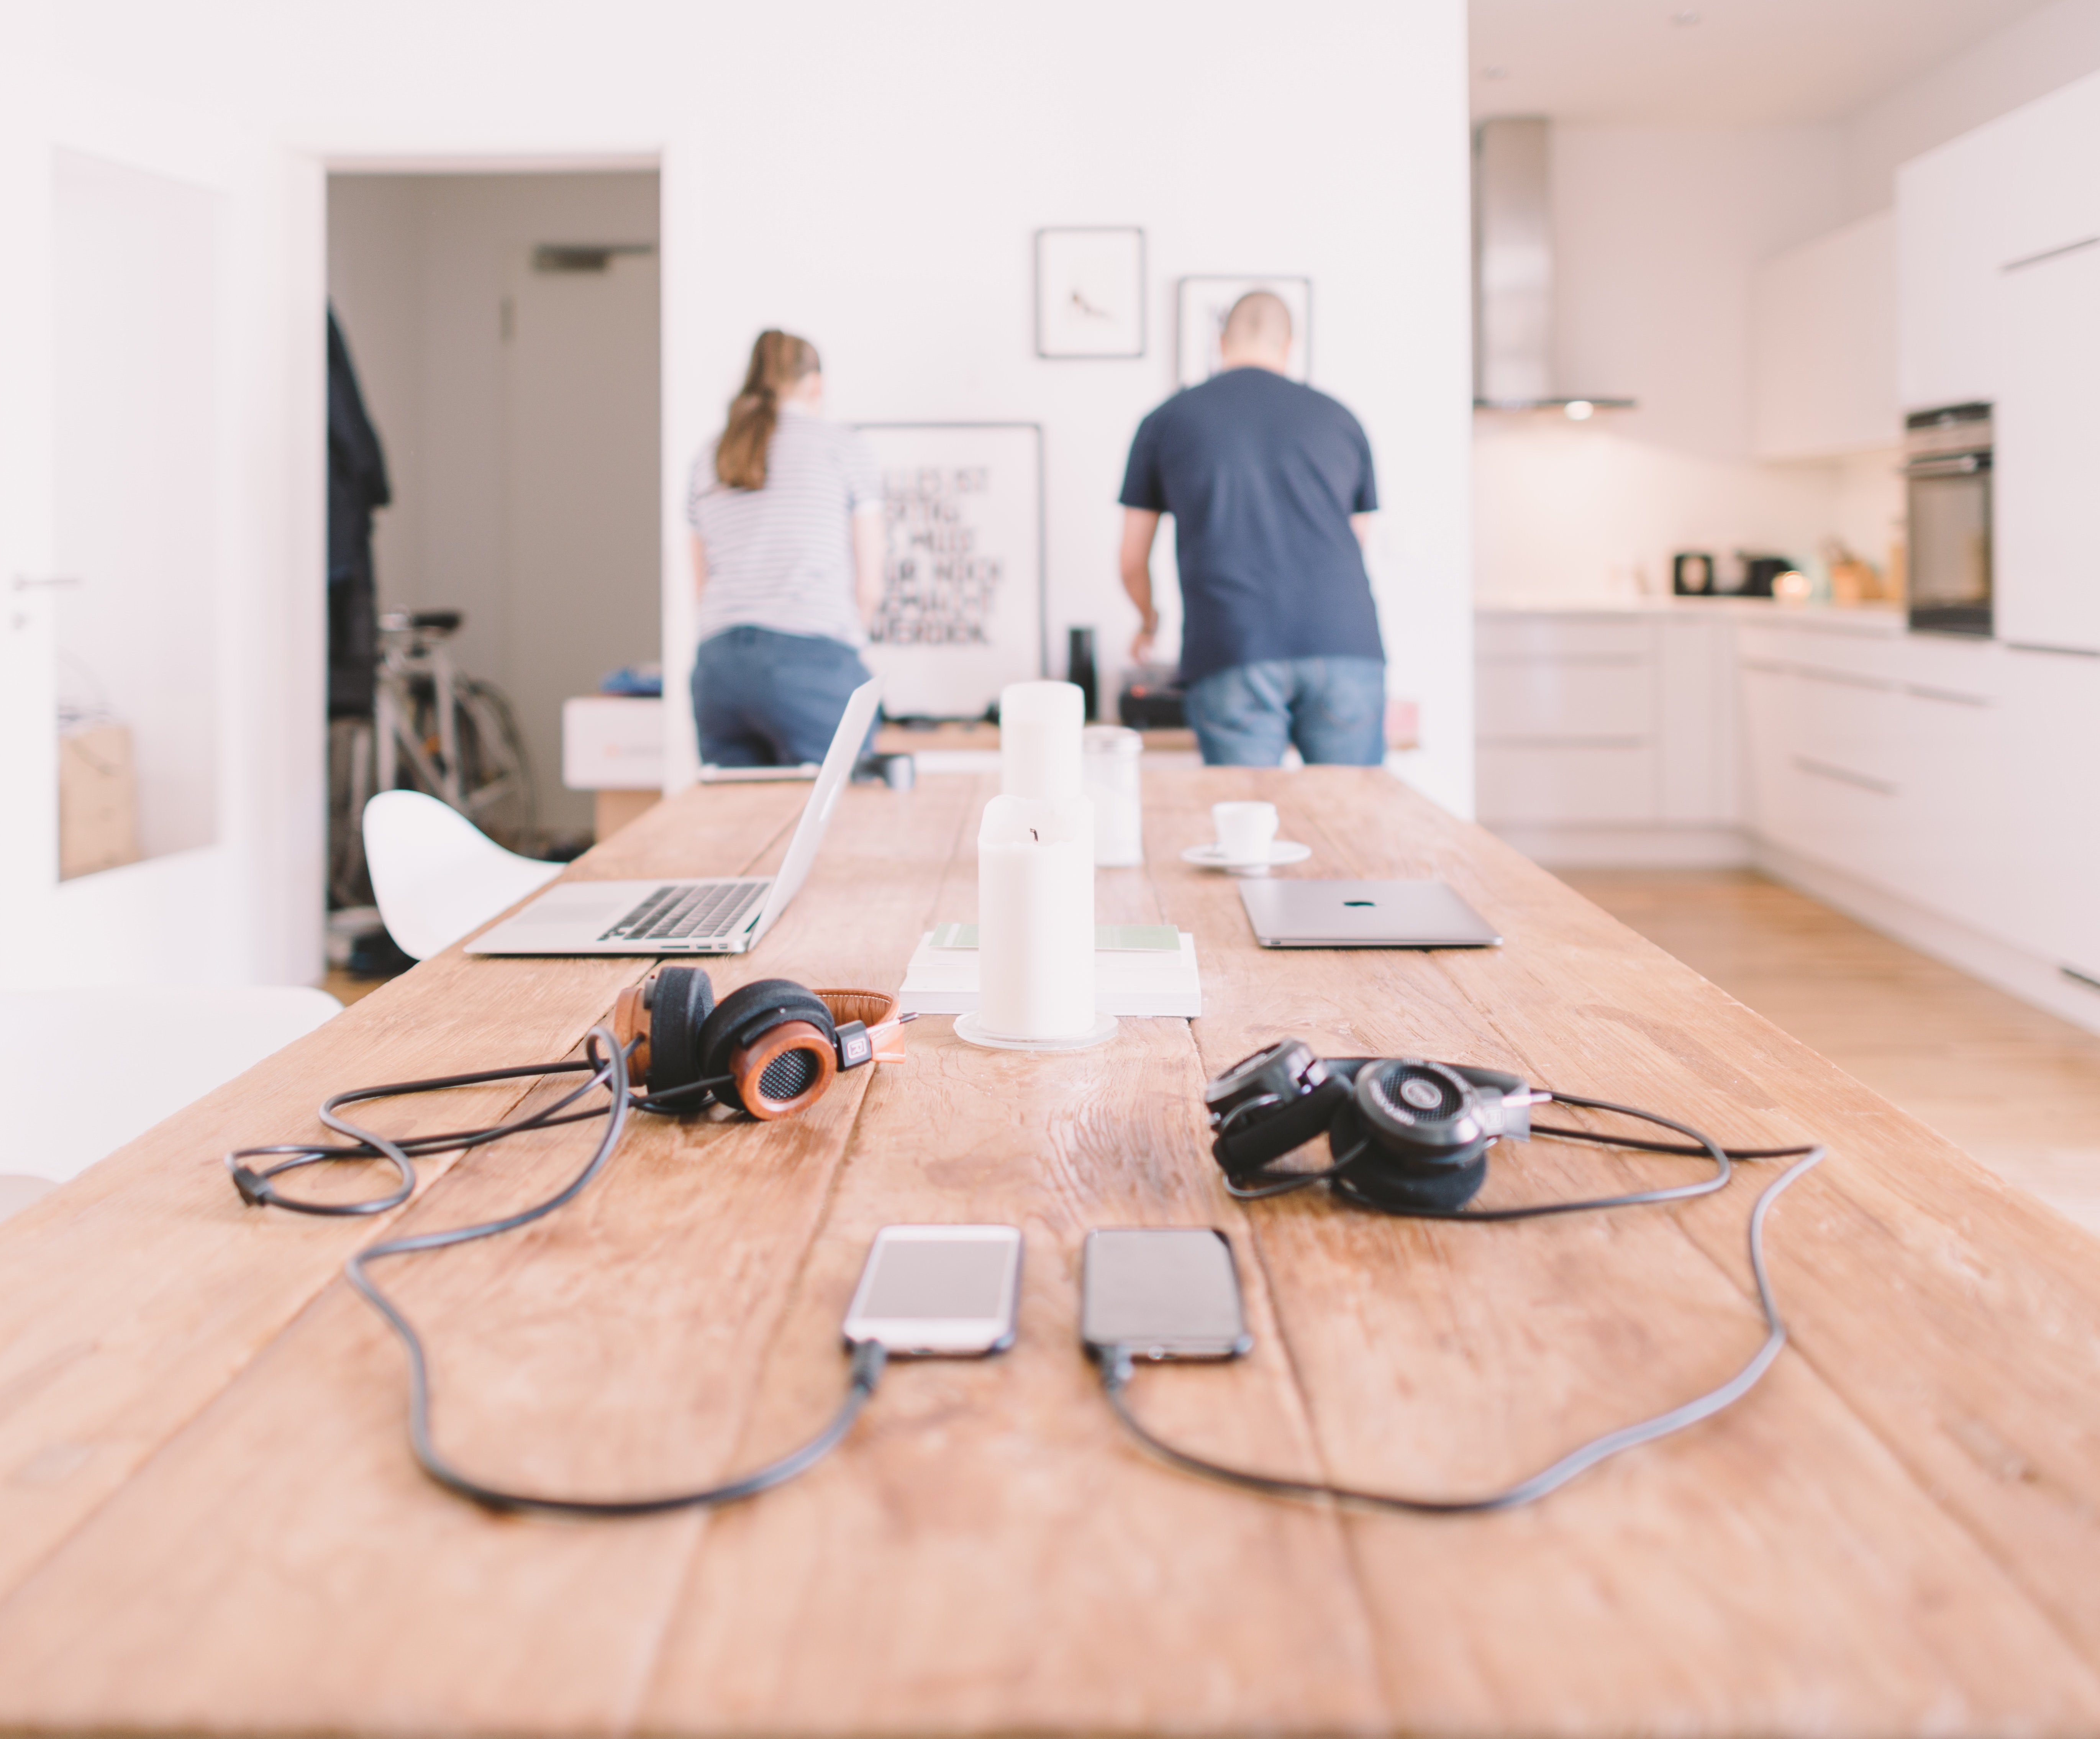 Two people working at the end of a room | Source: Unsplash.com